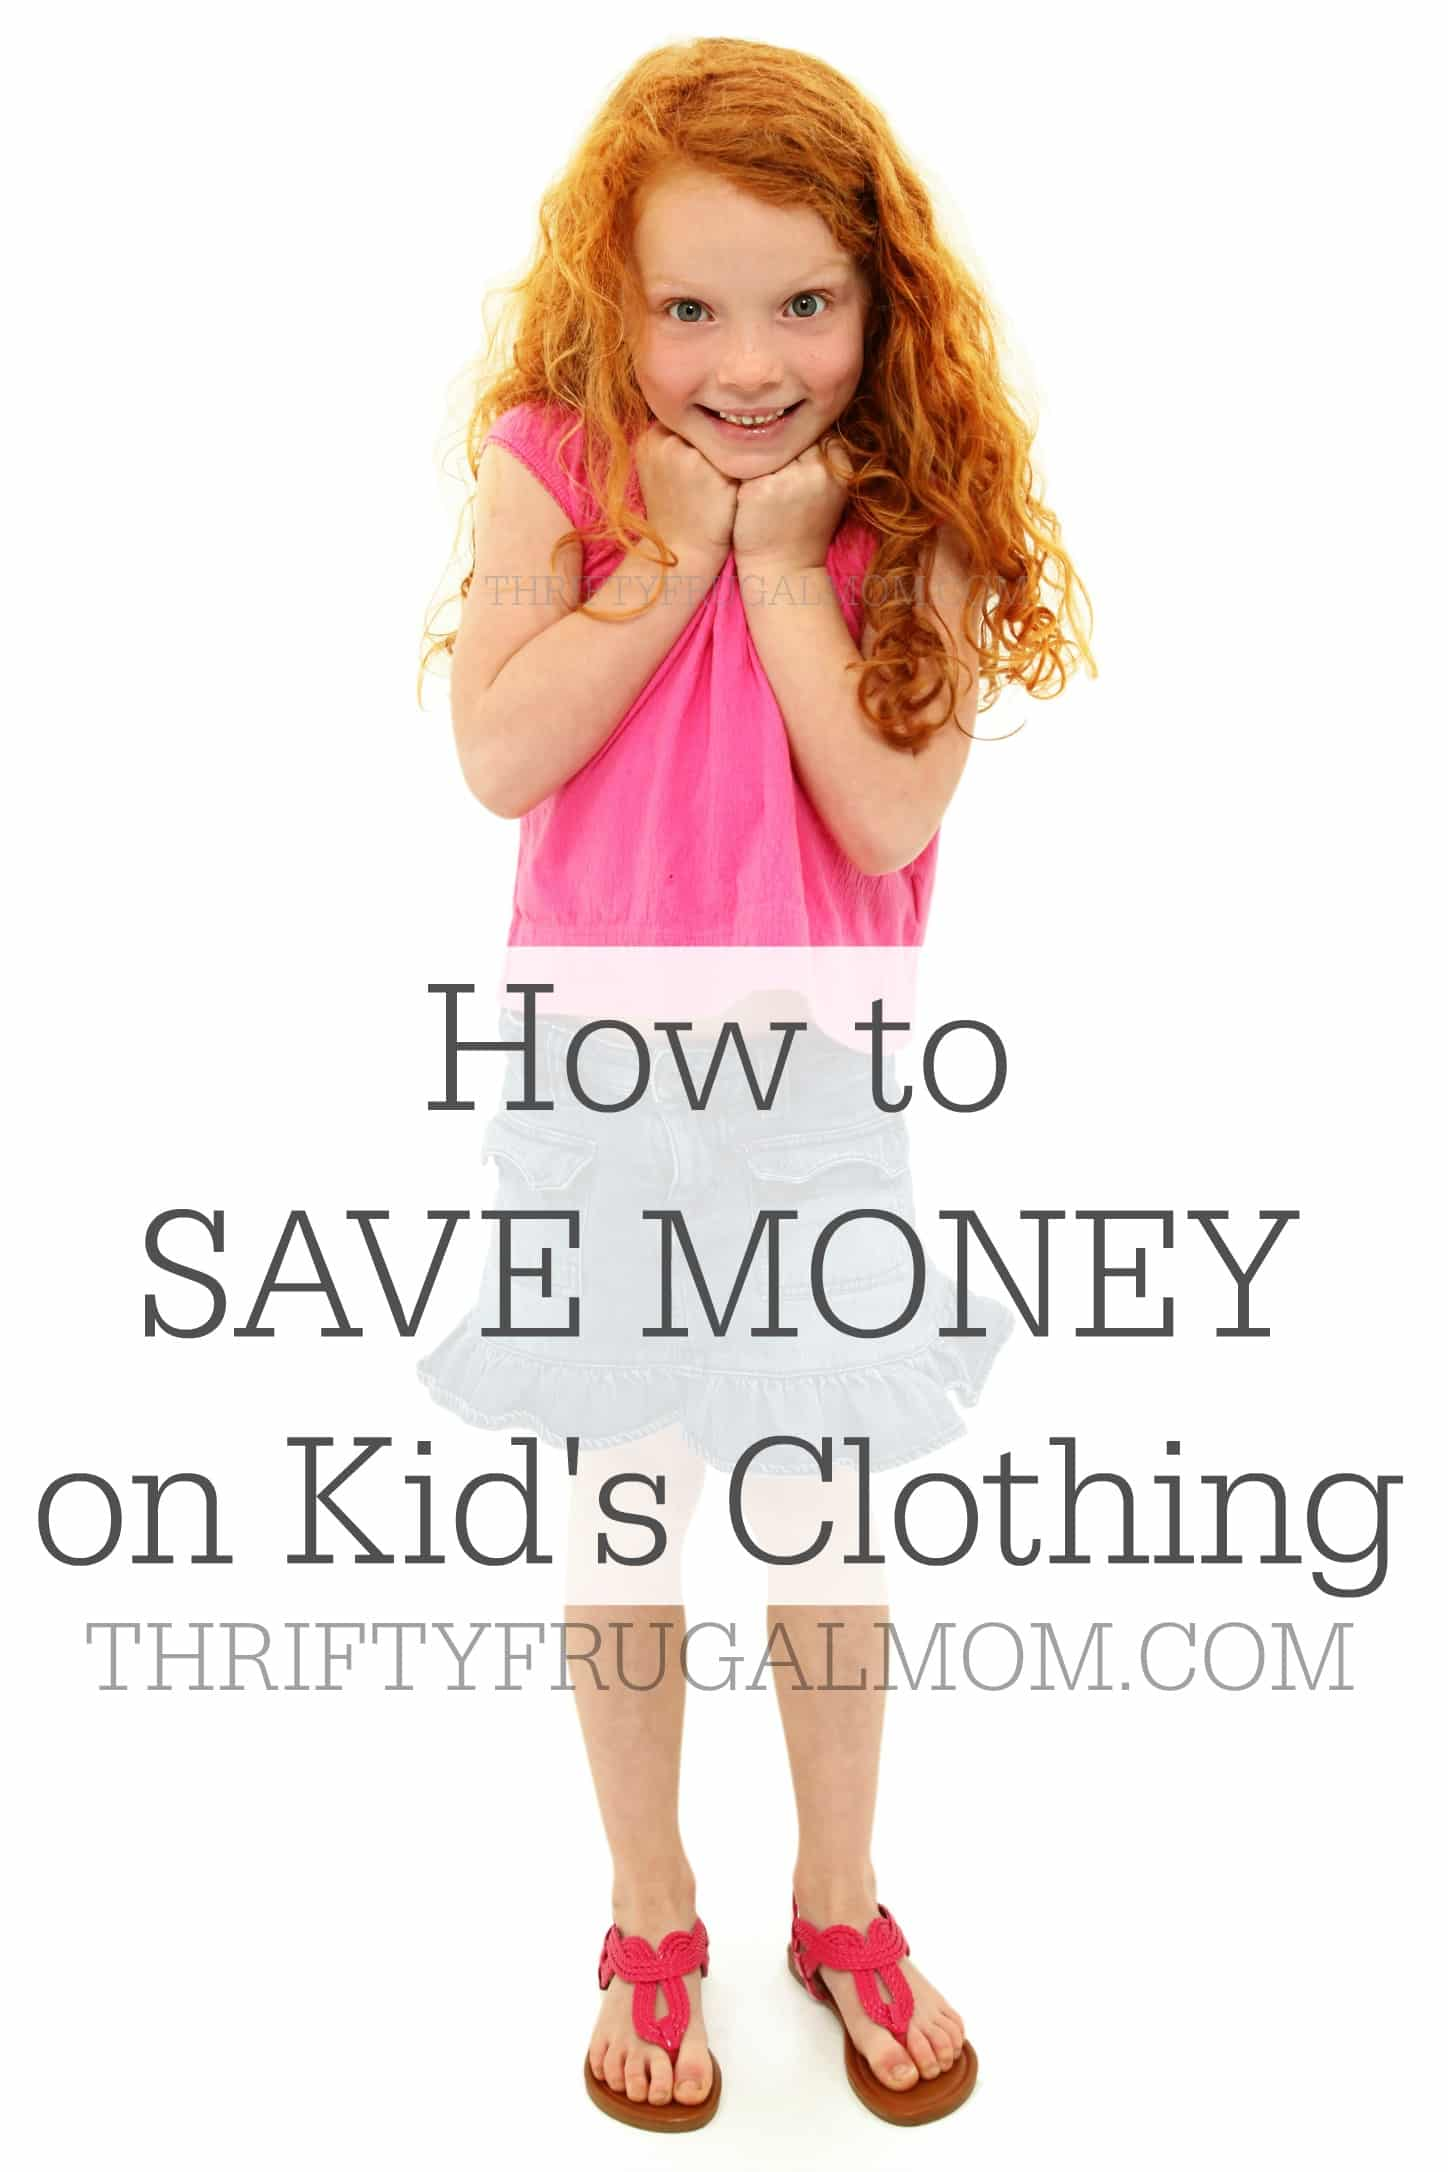 Just Kids Clothing